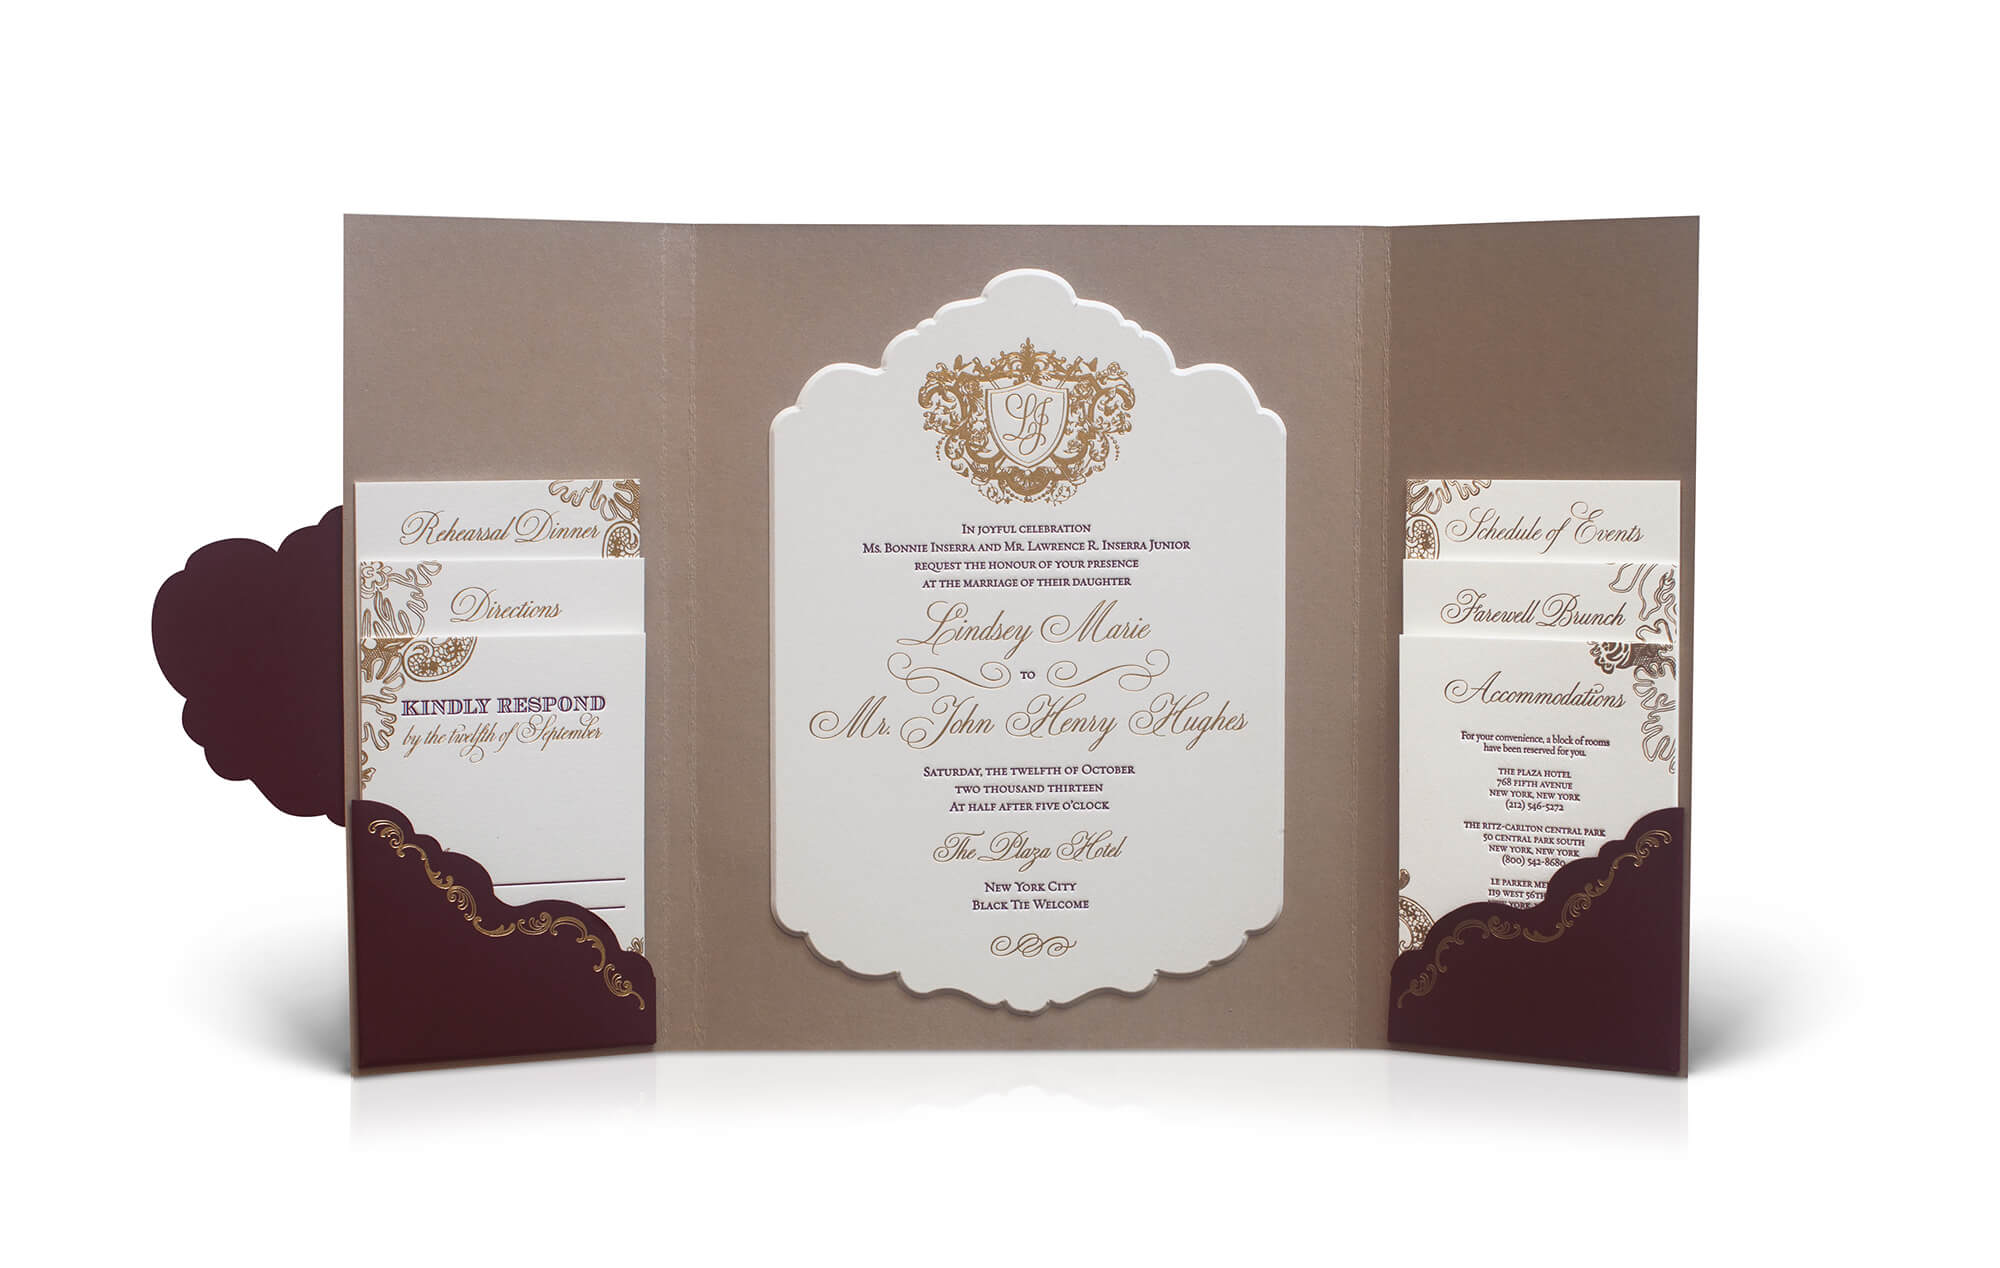 Plaza Hotel wedding invitation with folder and scalloped edges